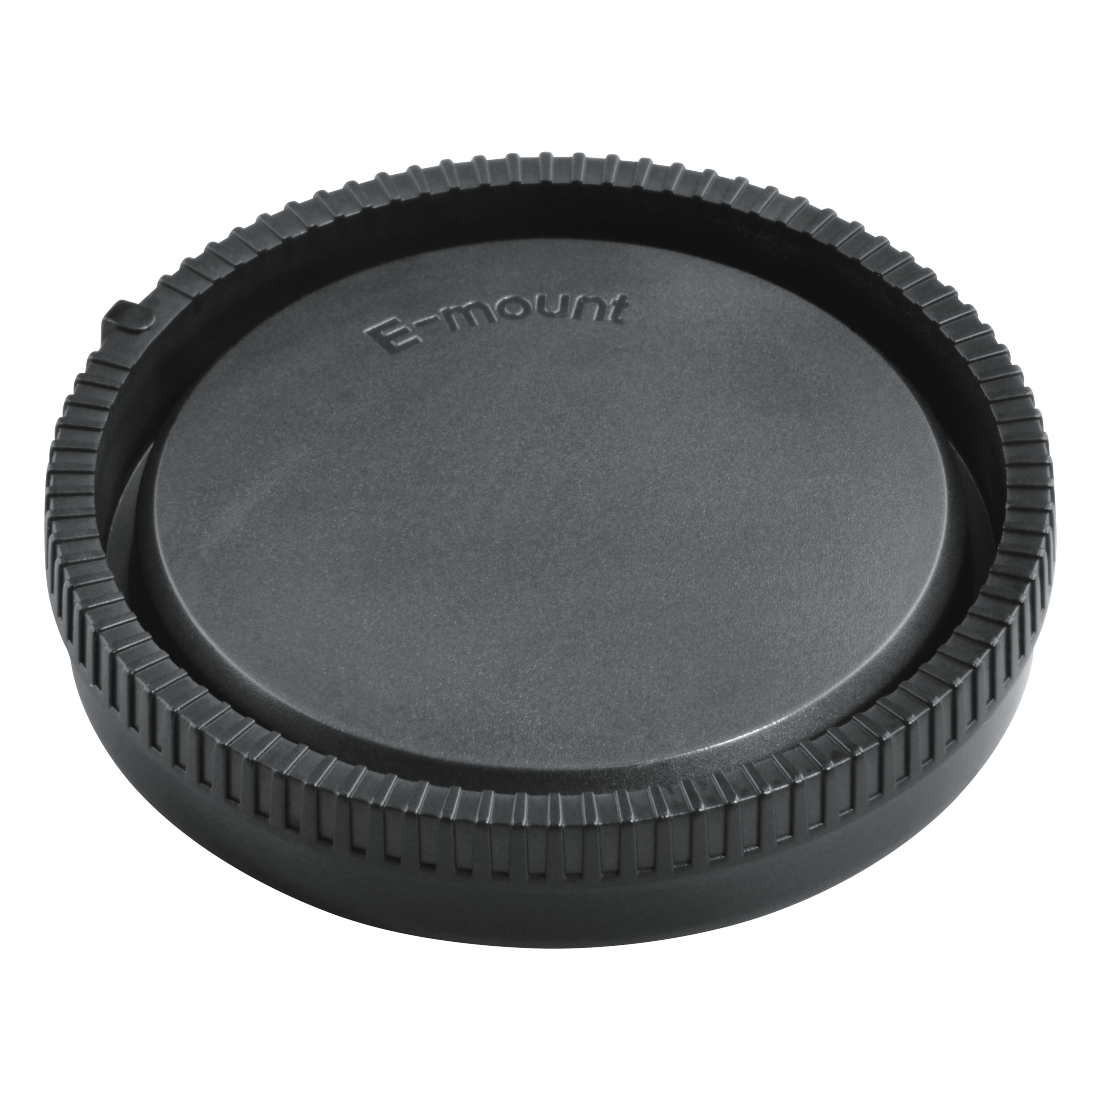 abx High-Res Image - Hama, Rear Lens Cap for NEX/Sony